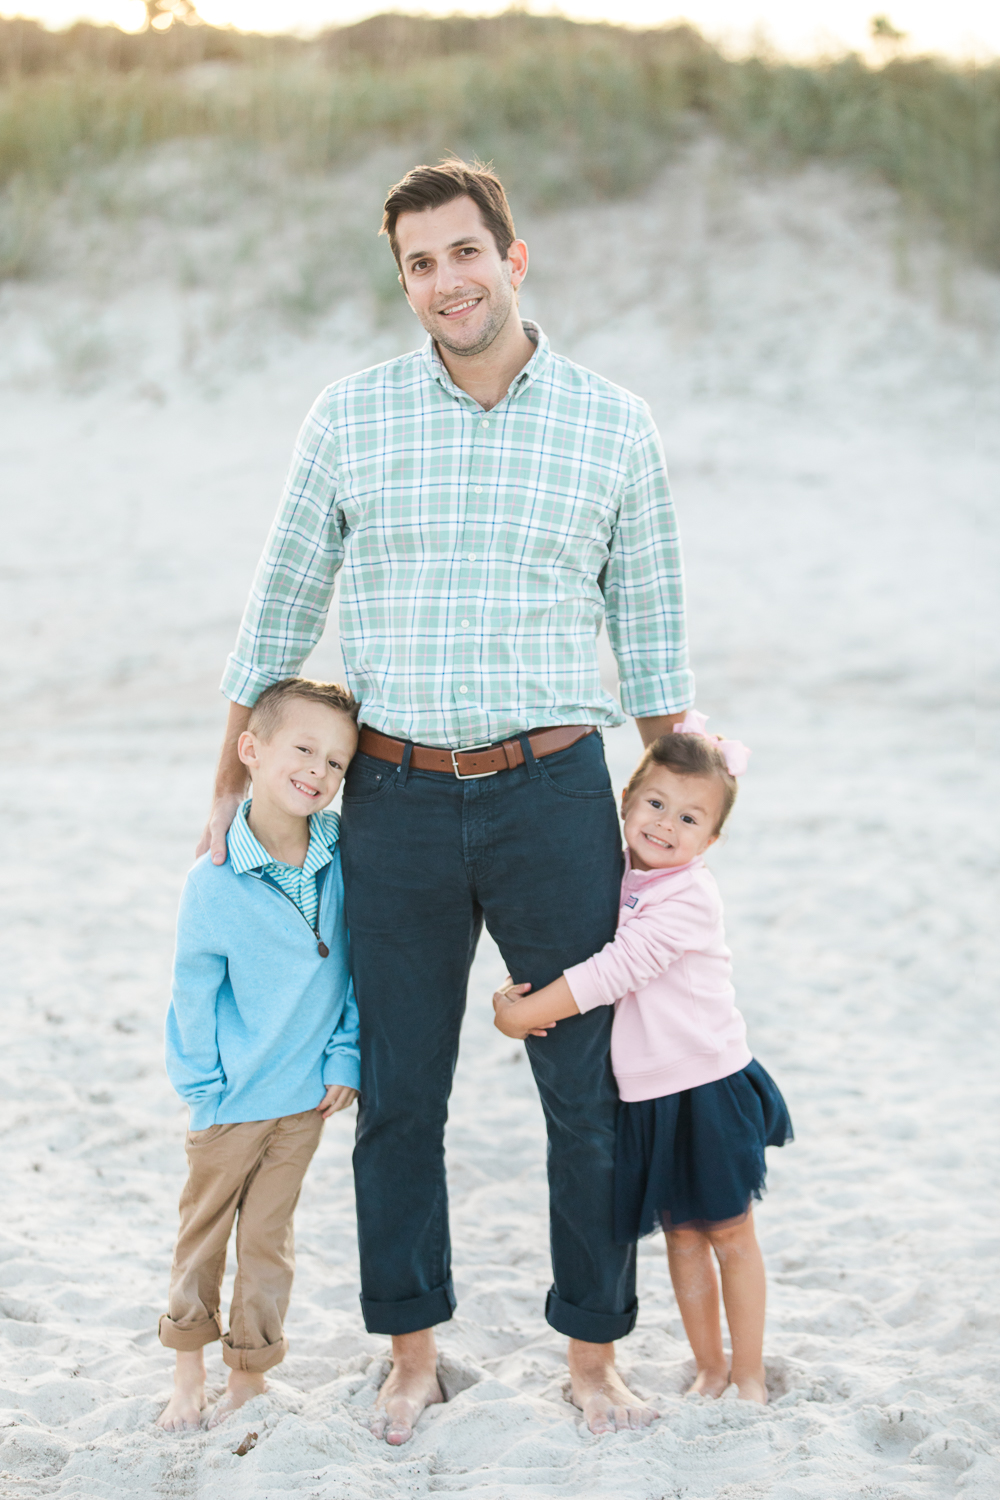 daddy and kids at the beach in Hanna Park